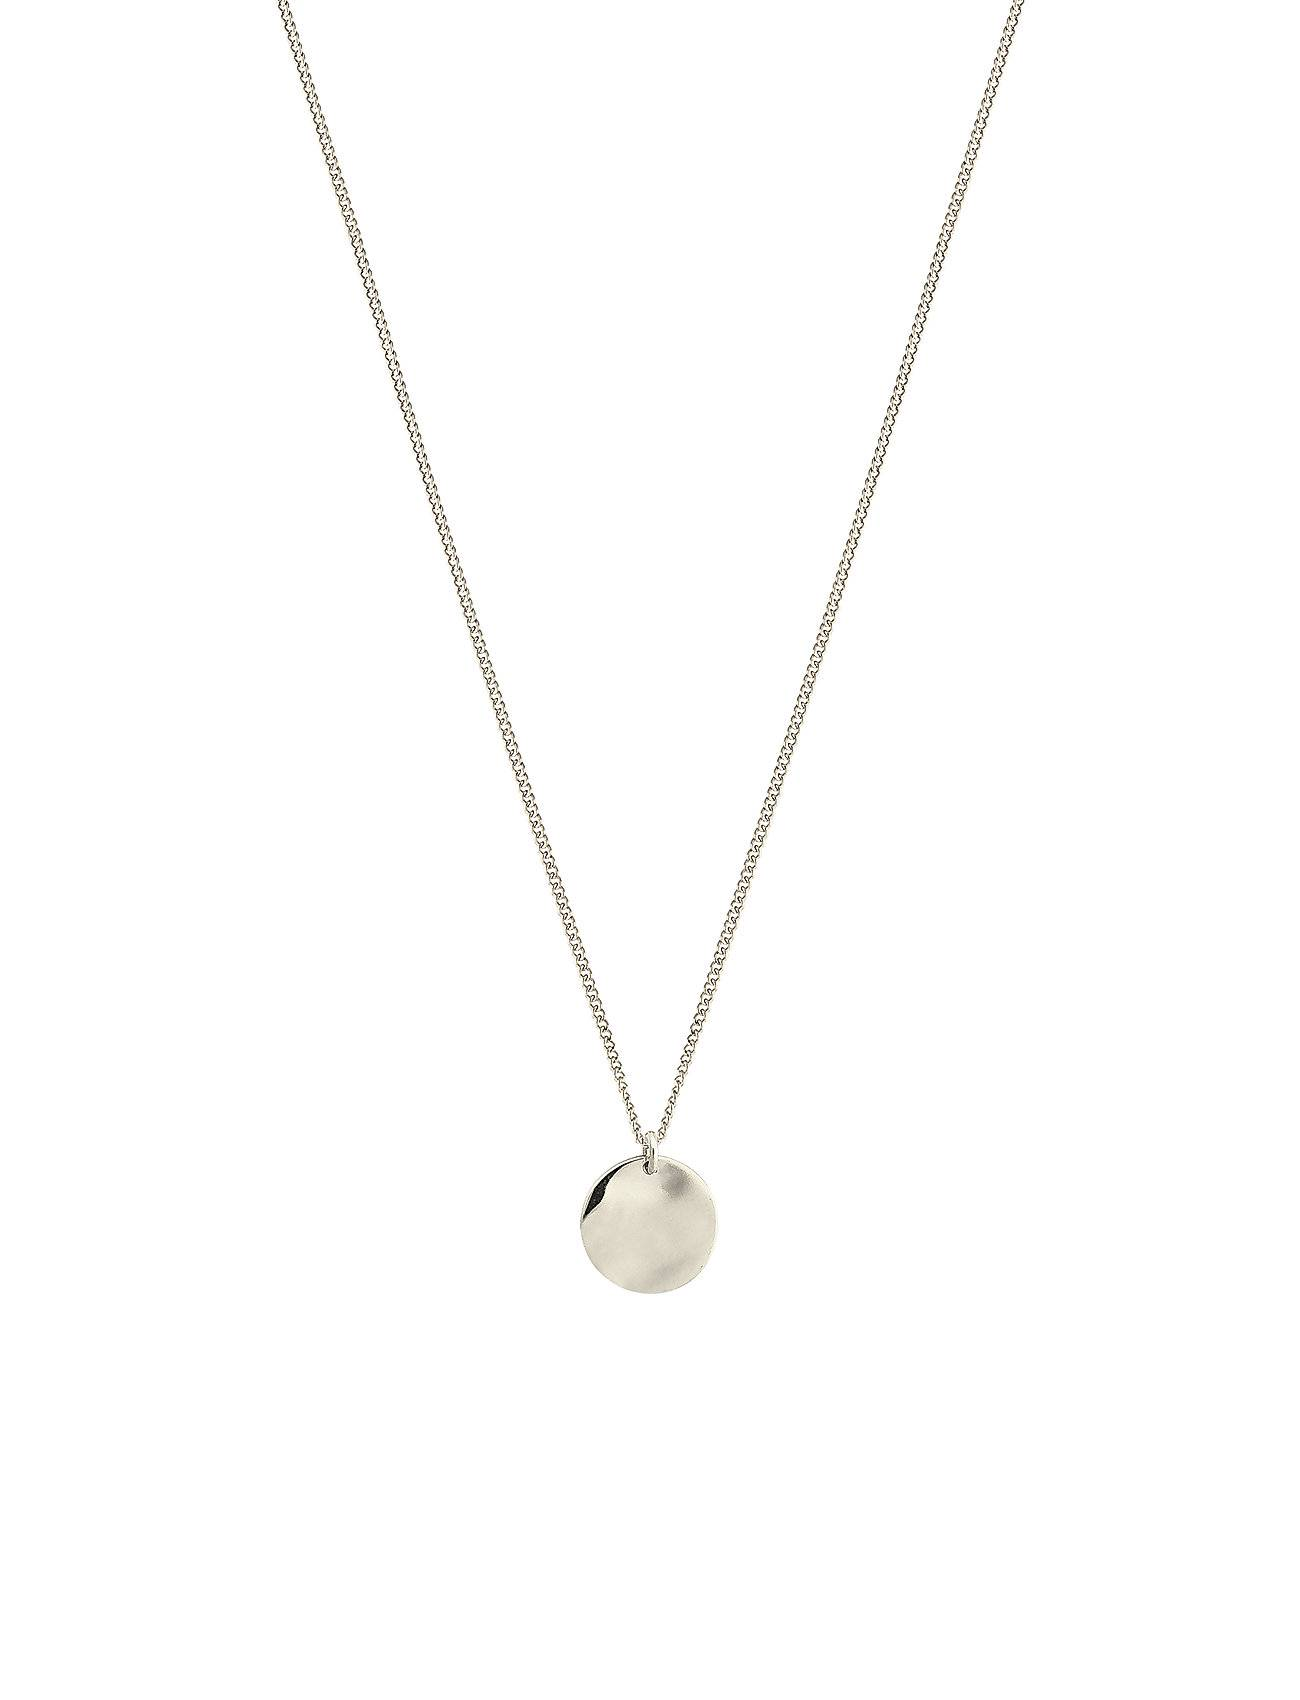 Syster P Minimalistica Hammered Circle Necklace Silver Accessories Jewellery Necklaces Dainty Necklaces Hopea Syster P